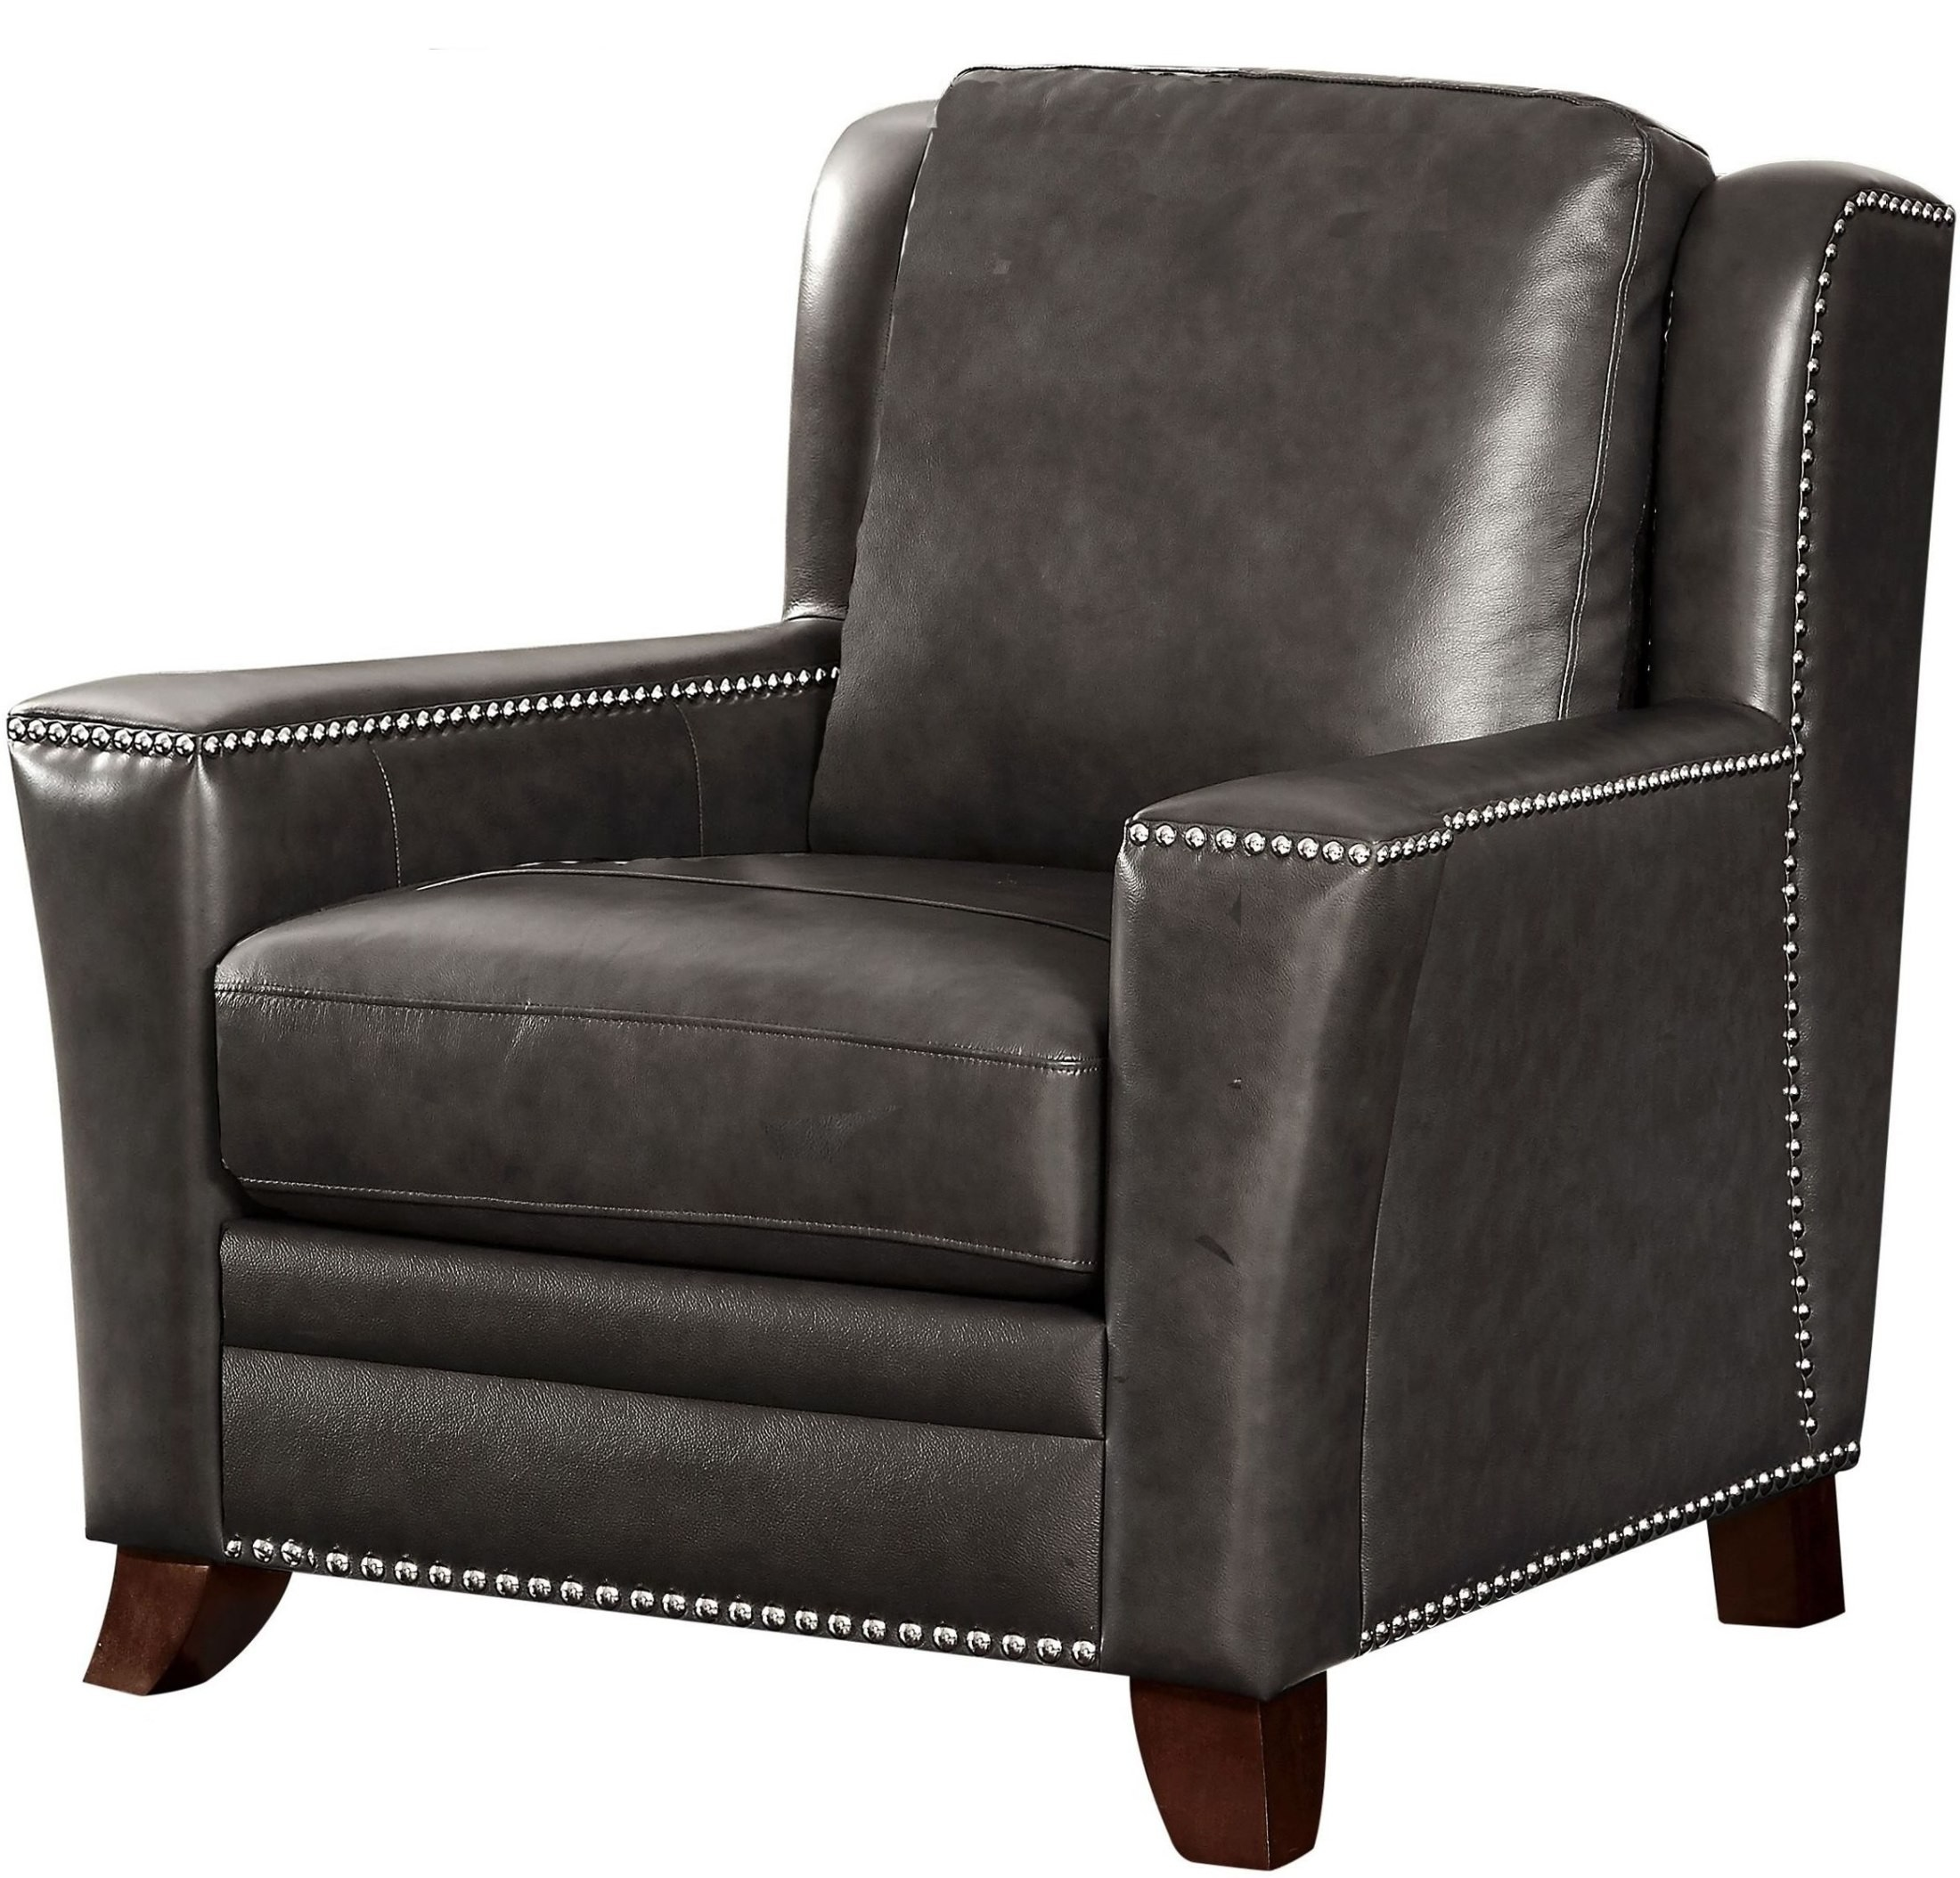 Westport Easton Graystone Leather Chair from Luxe Leather